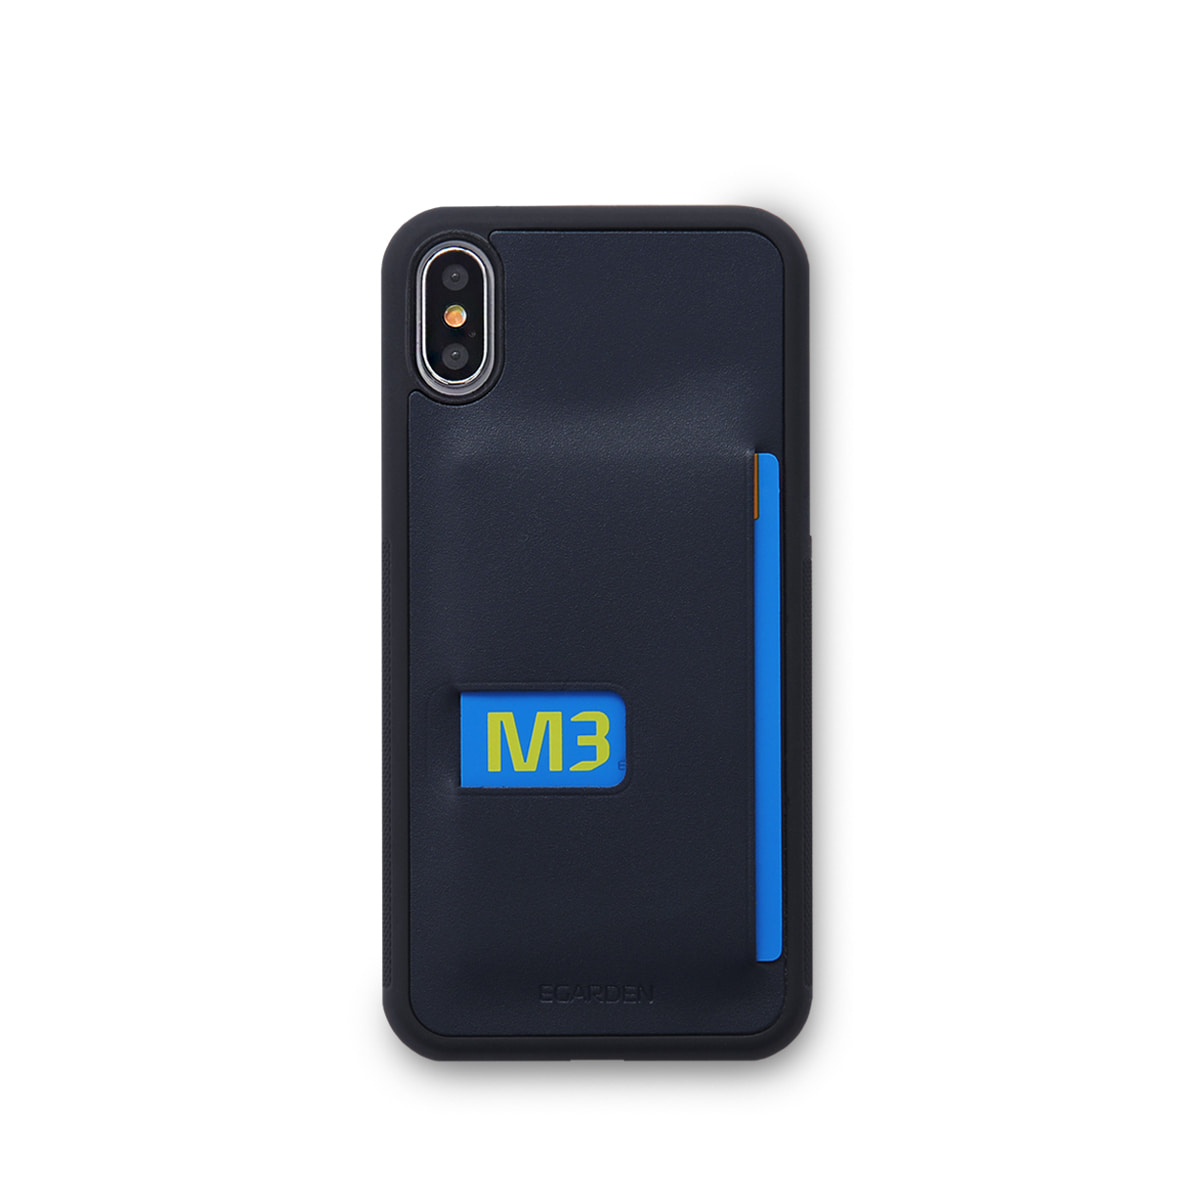 iPhoneX Back Cover Case Navy